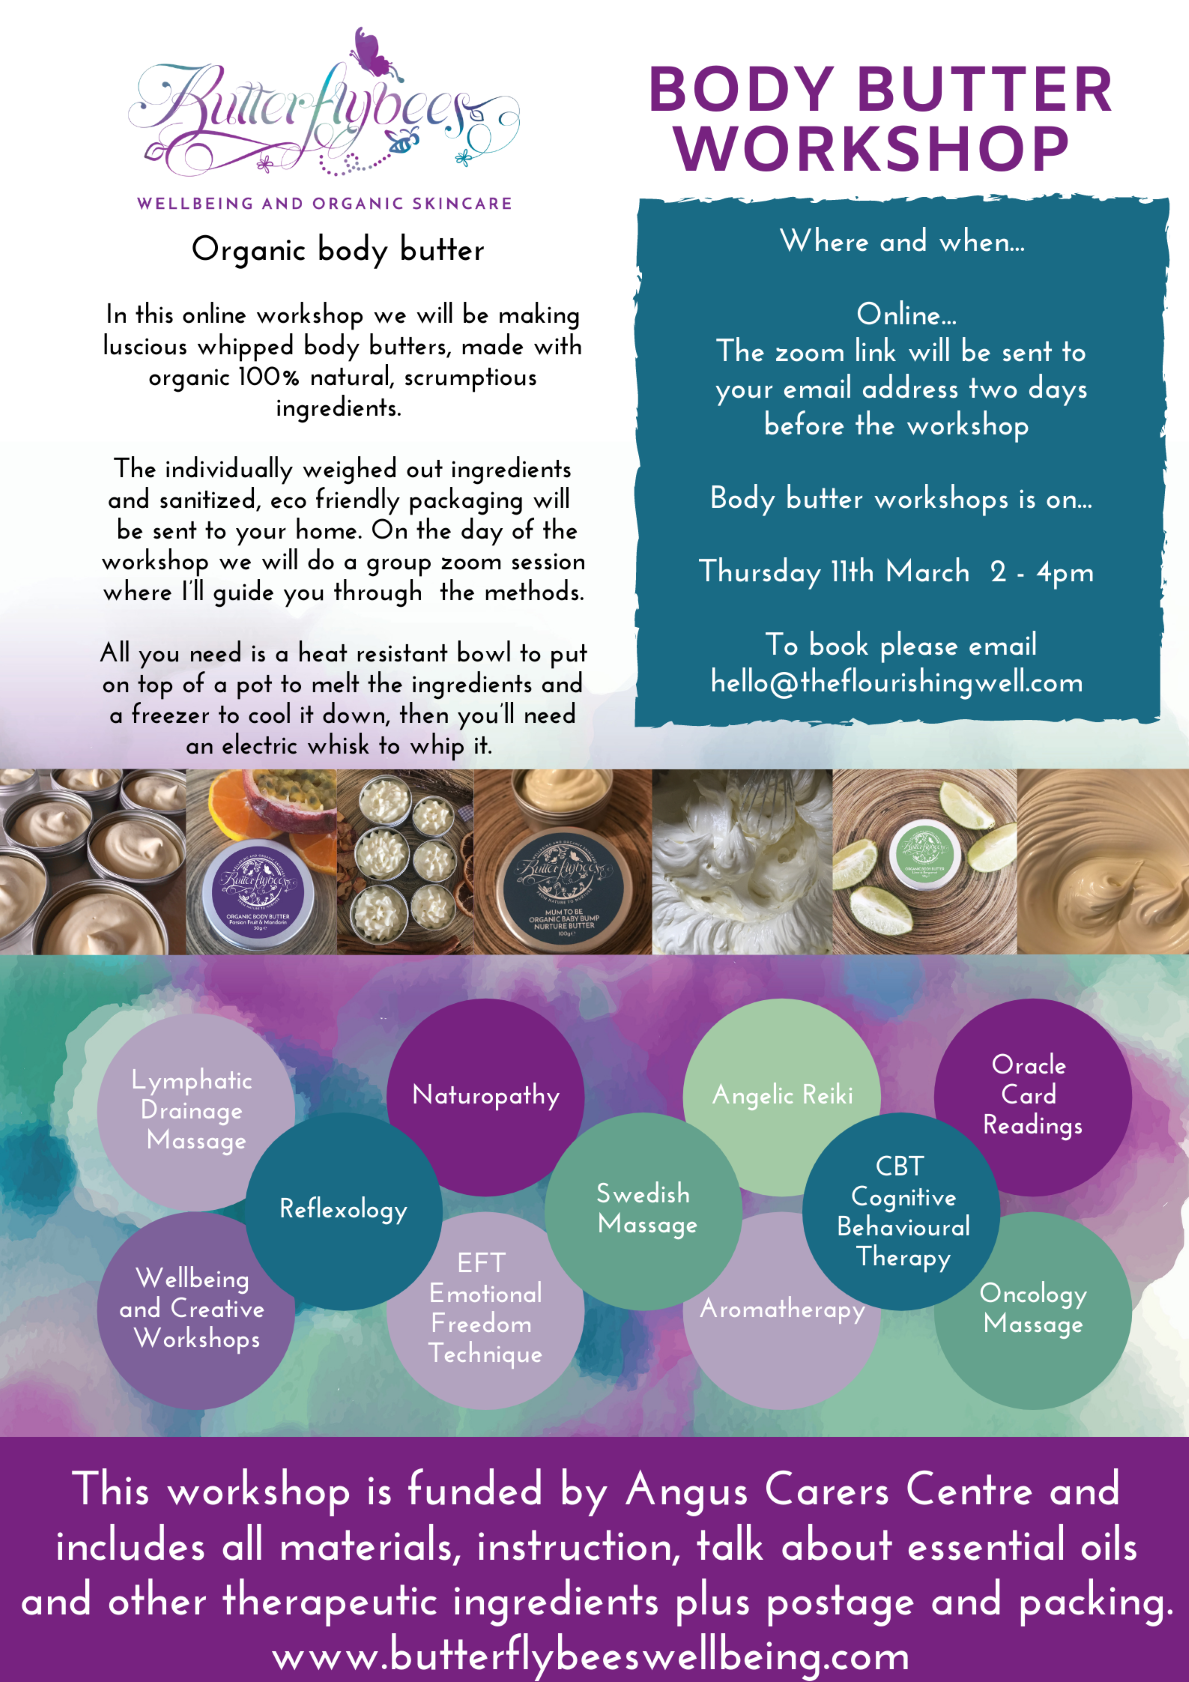 Body Butter Workshop